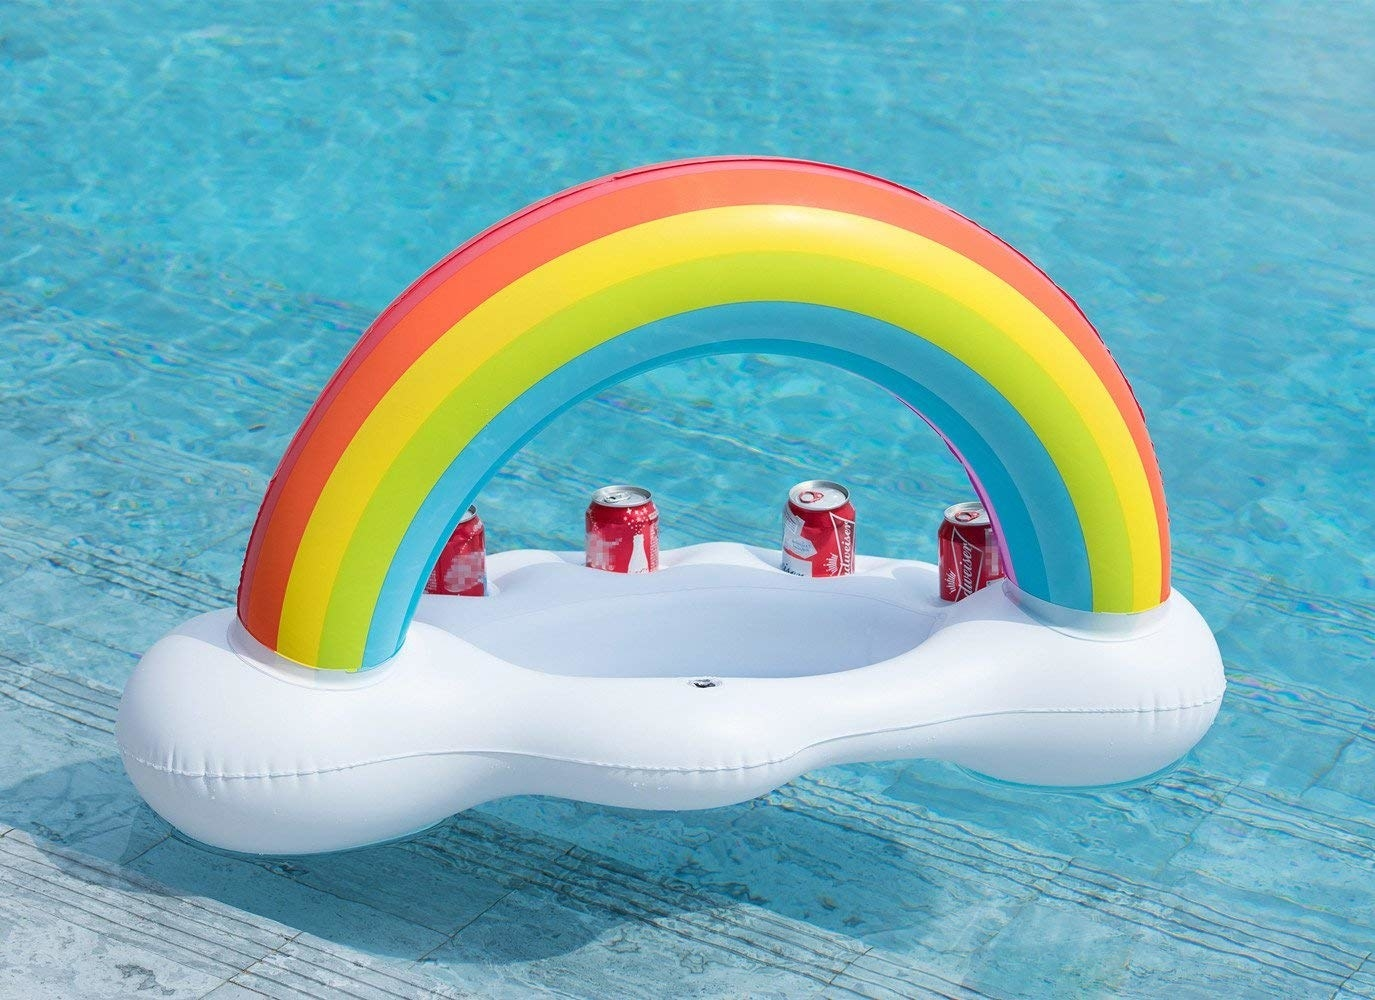 Floating beverage bar in the shape of a rainbow with clouds beneath it where four soda cans sit